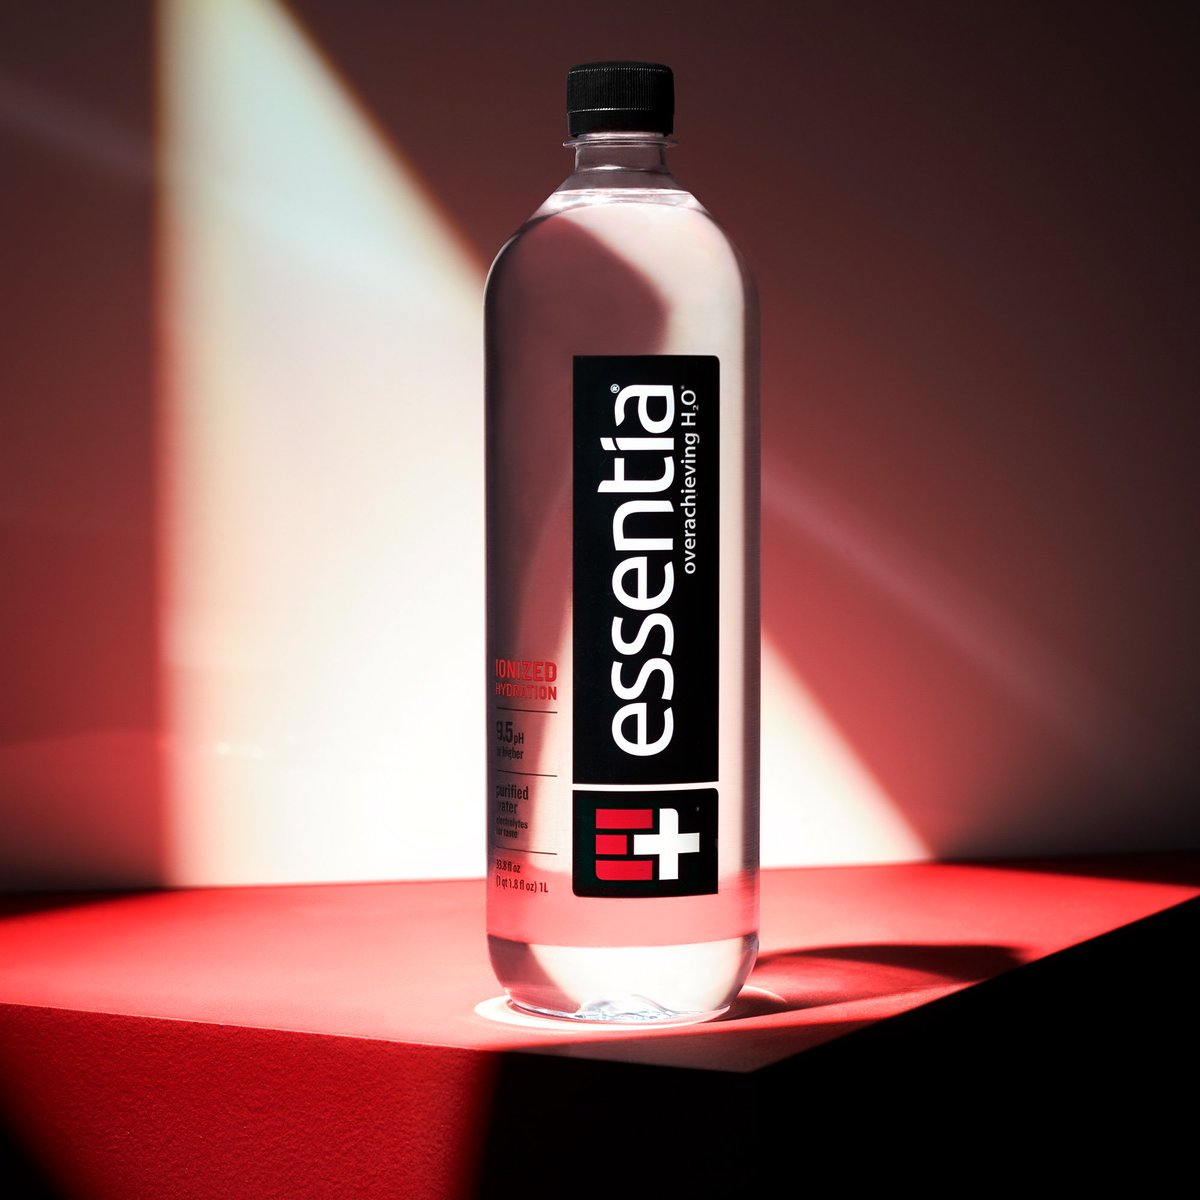 Fluoride free. Chlorine free. BPA free. Click to learn more about what makes Essentia #OverachievingH2O: https://t.co/tF8ayUxvpf https://t.co/3fBaRKjCwS